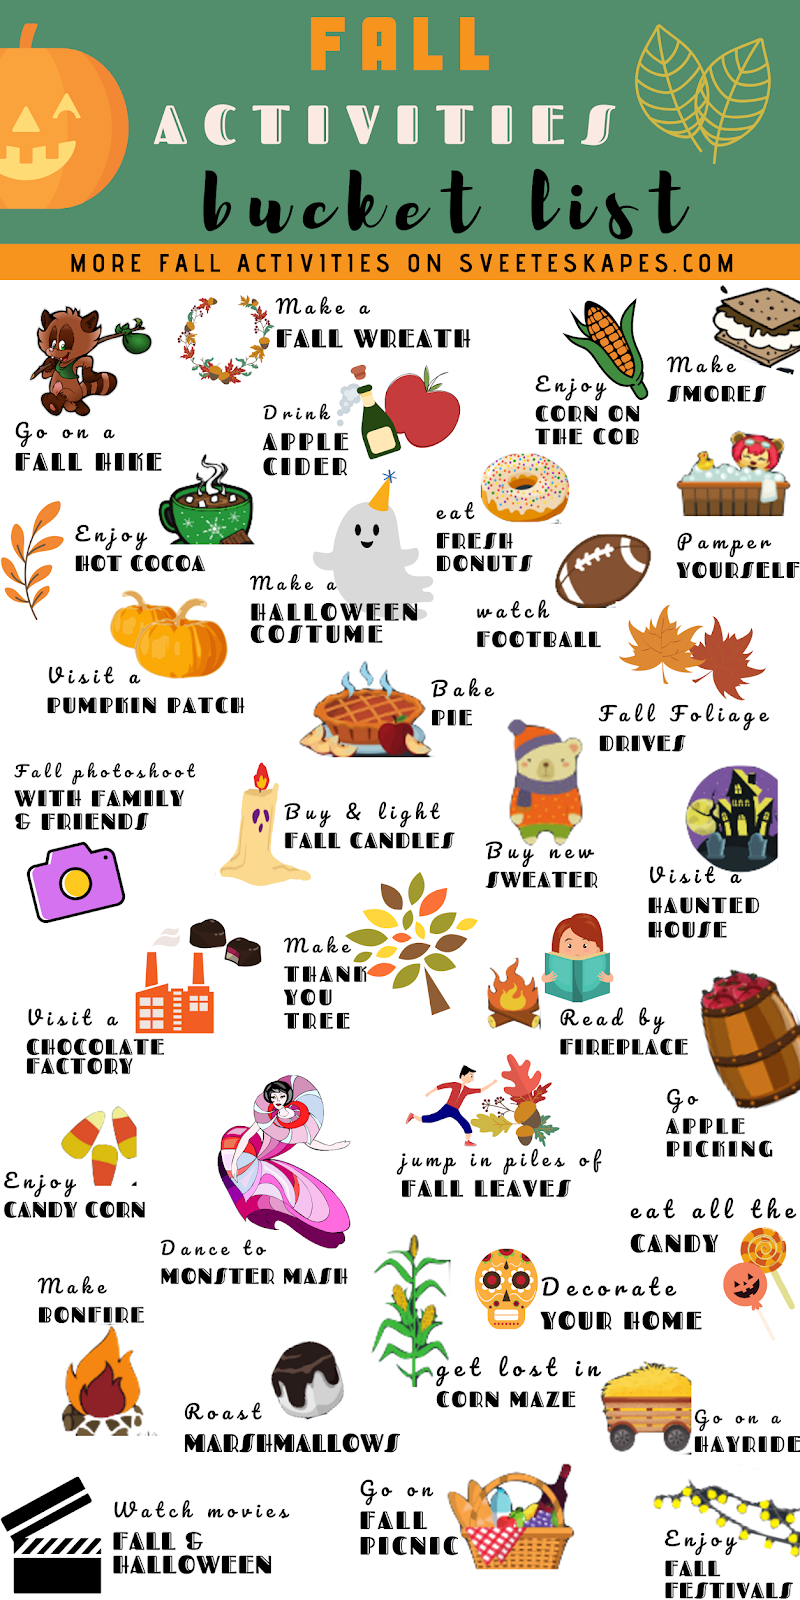 Fall Bucket List Activities featured by top US lifestyle blog, Sveeteskapes